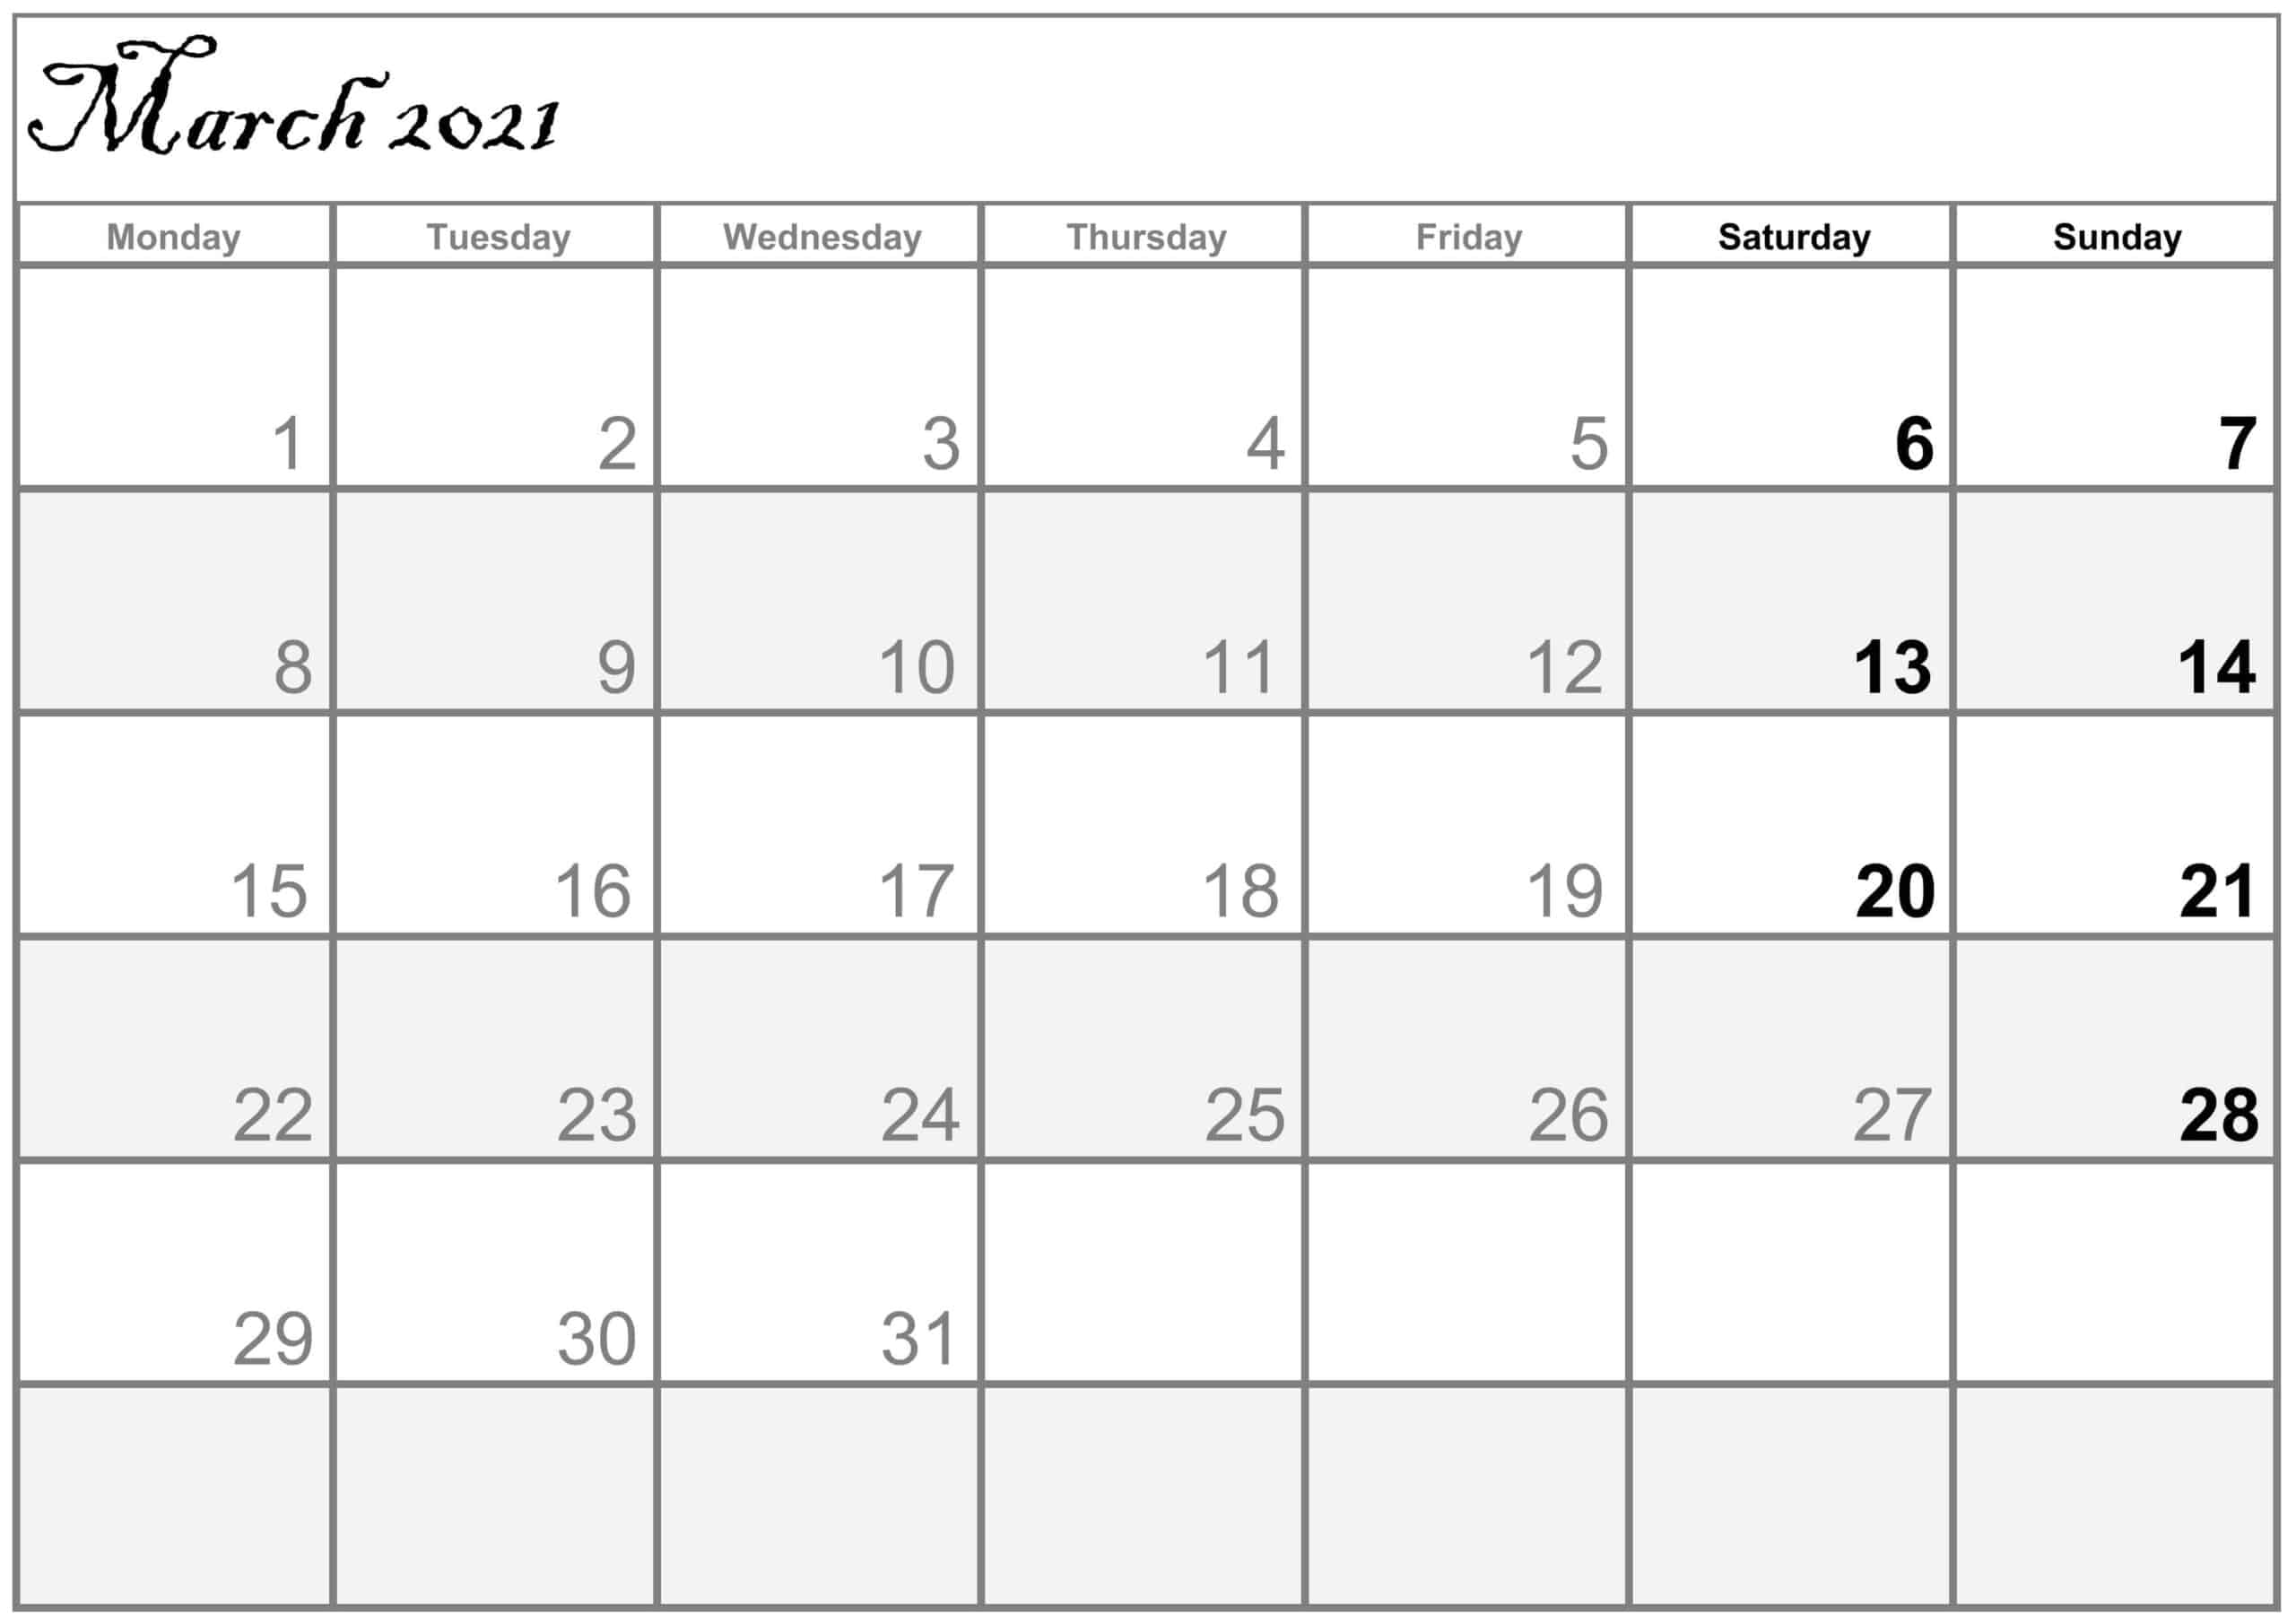 March 2021 Calendar With Holidays Layout